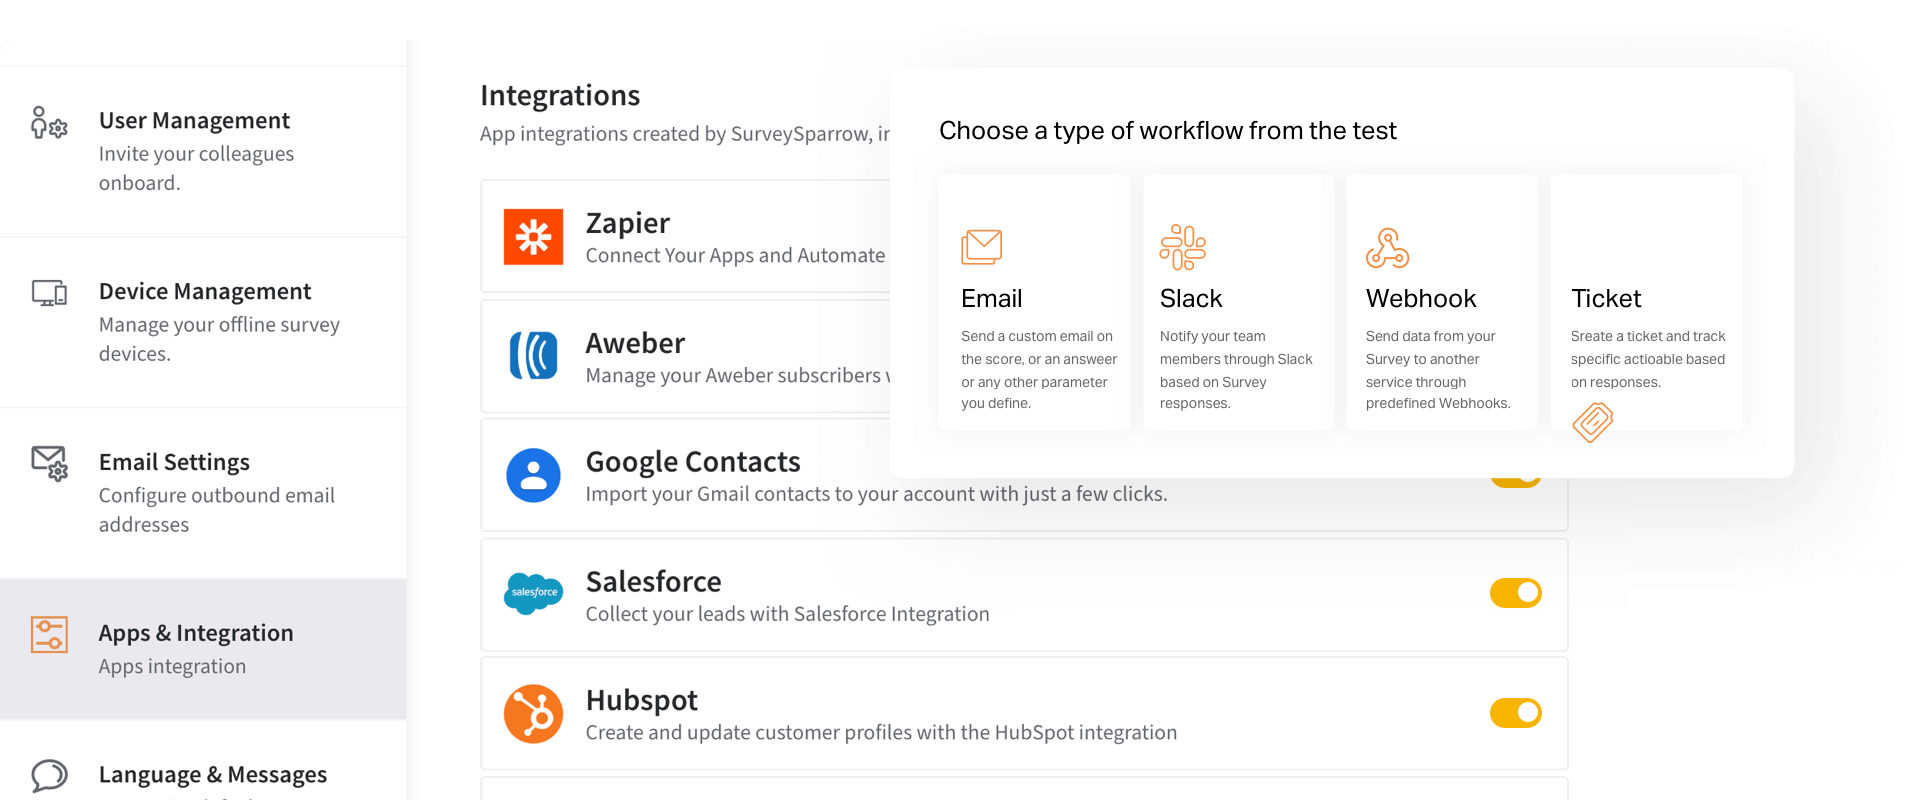 Automate workflows with webhooks, API, and native integrations.